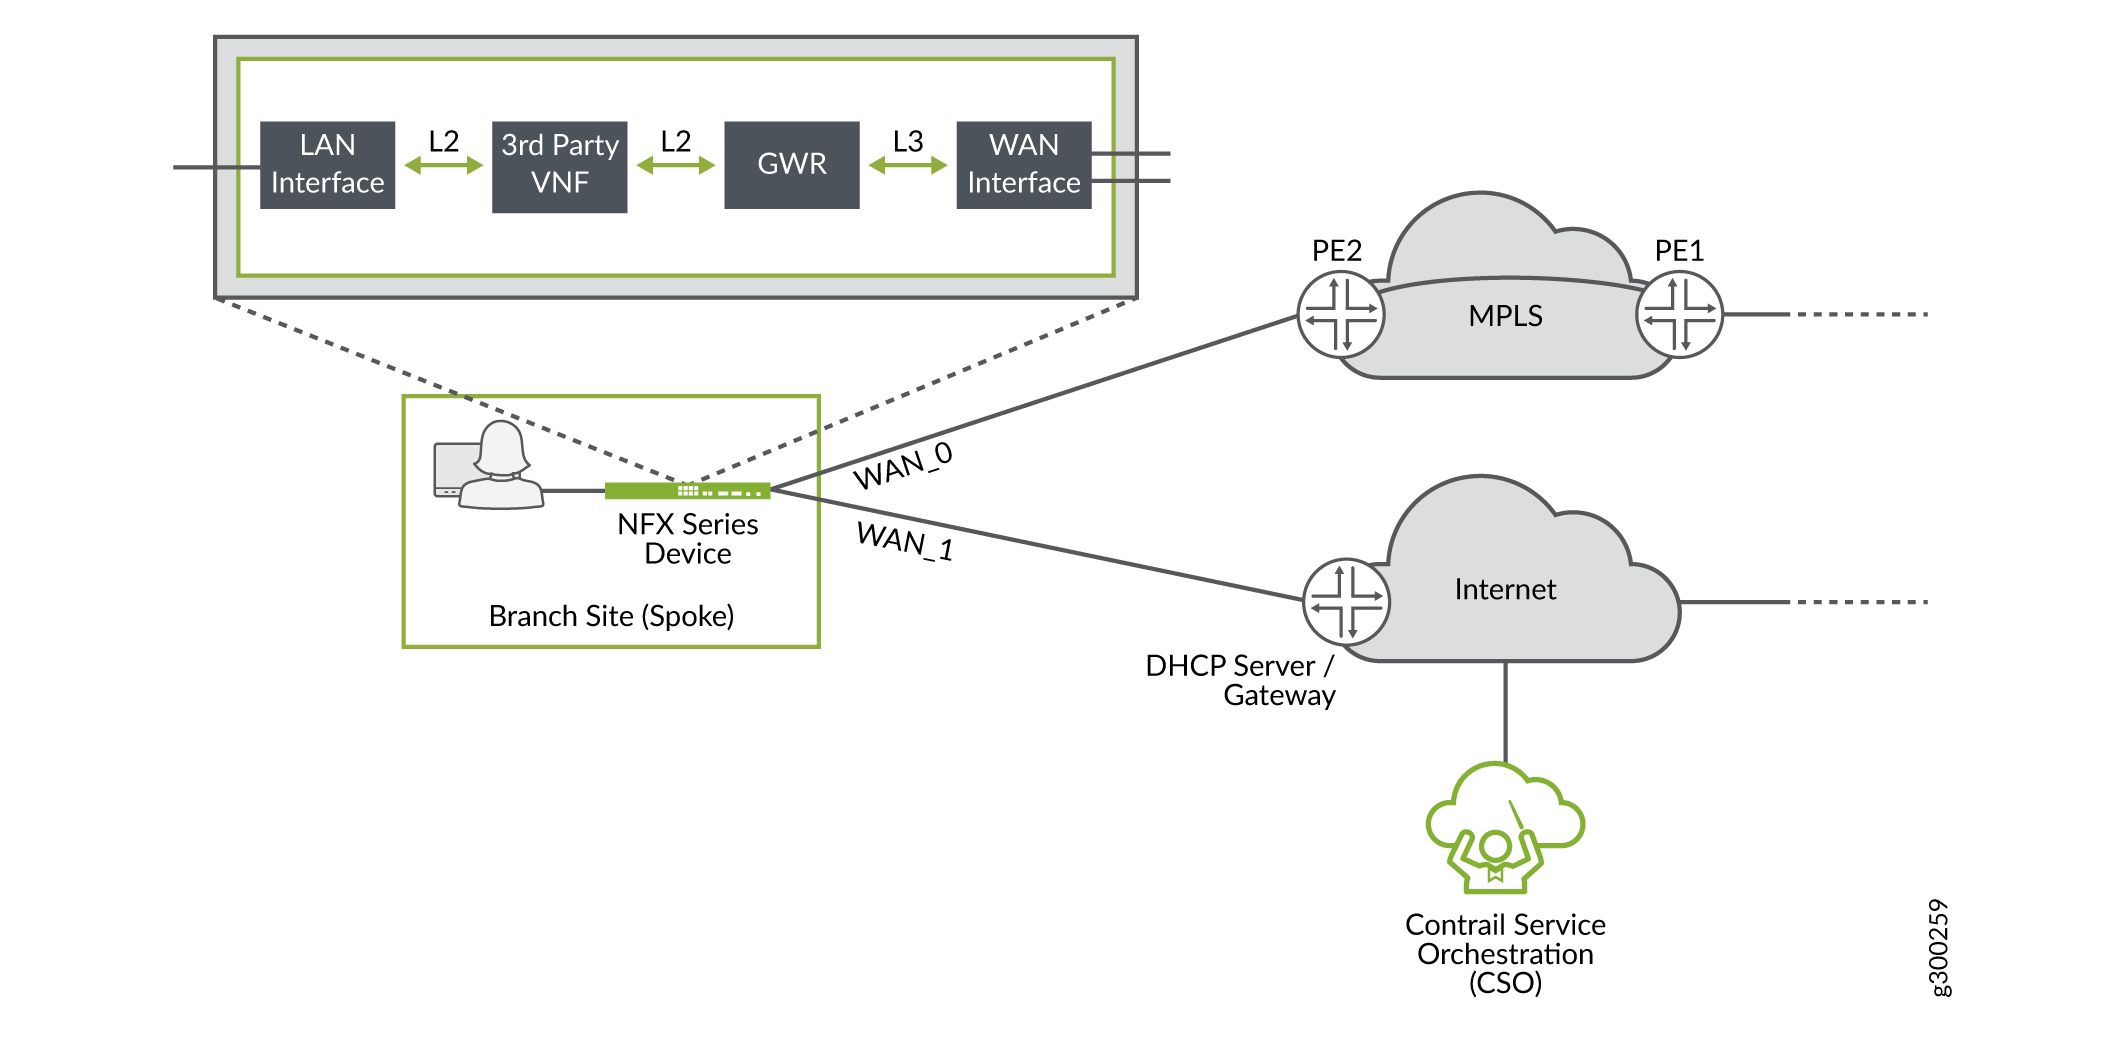 Service Chaining in an SD-WAN Environment